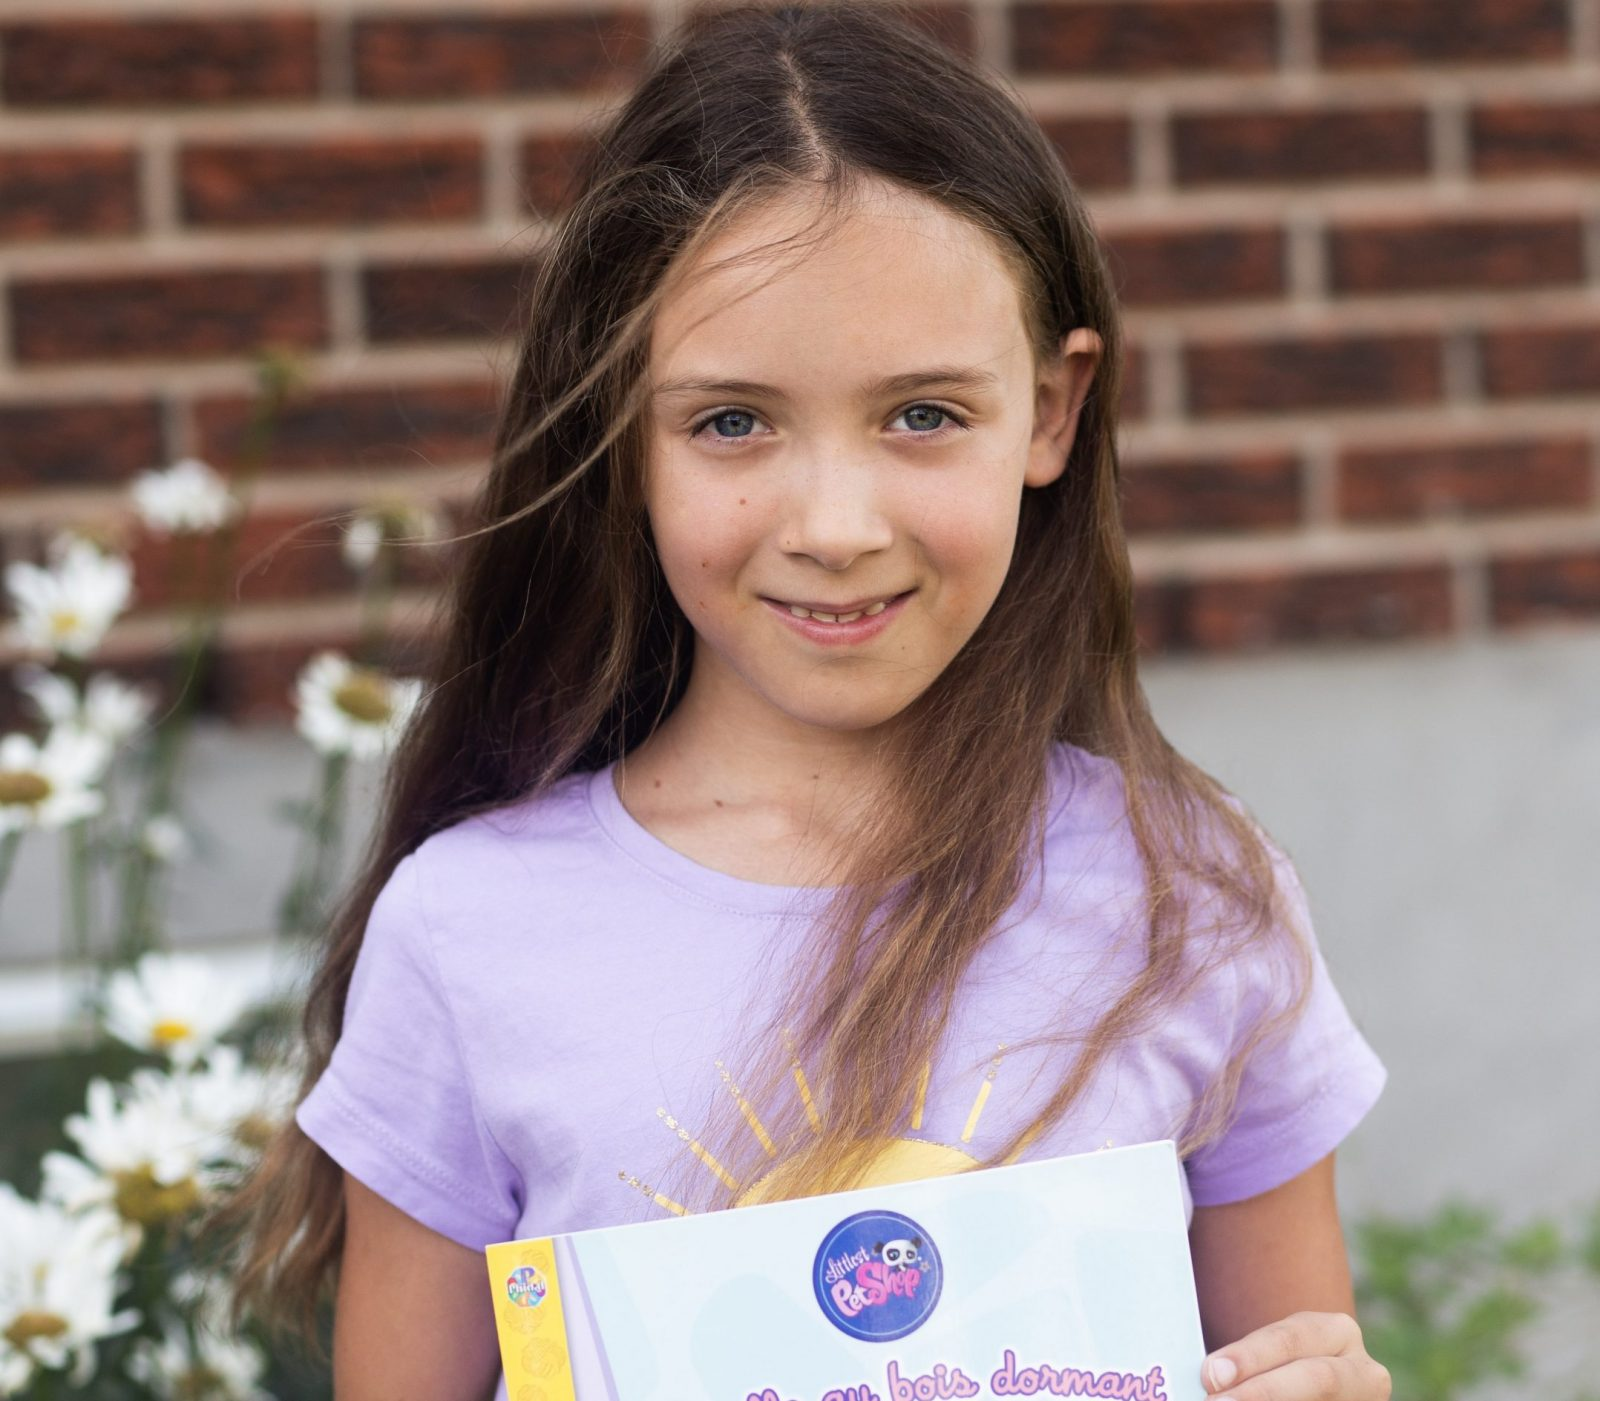 Goslings Initiative issues Summer Reading Challenge for kids